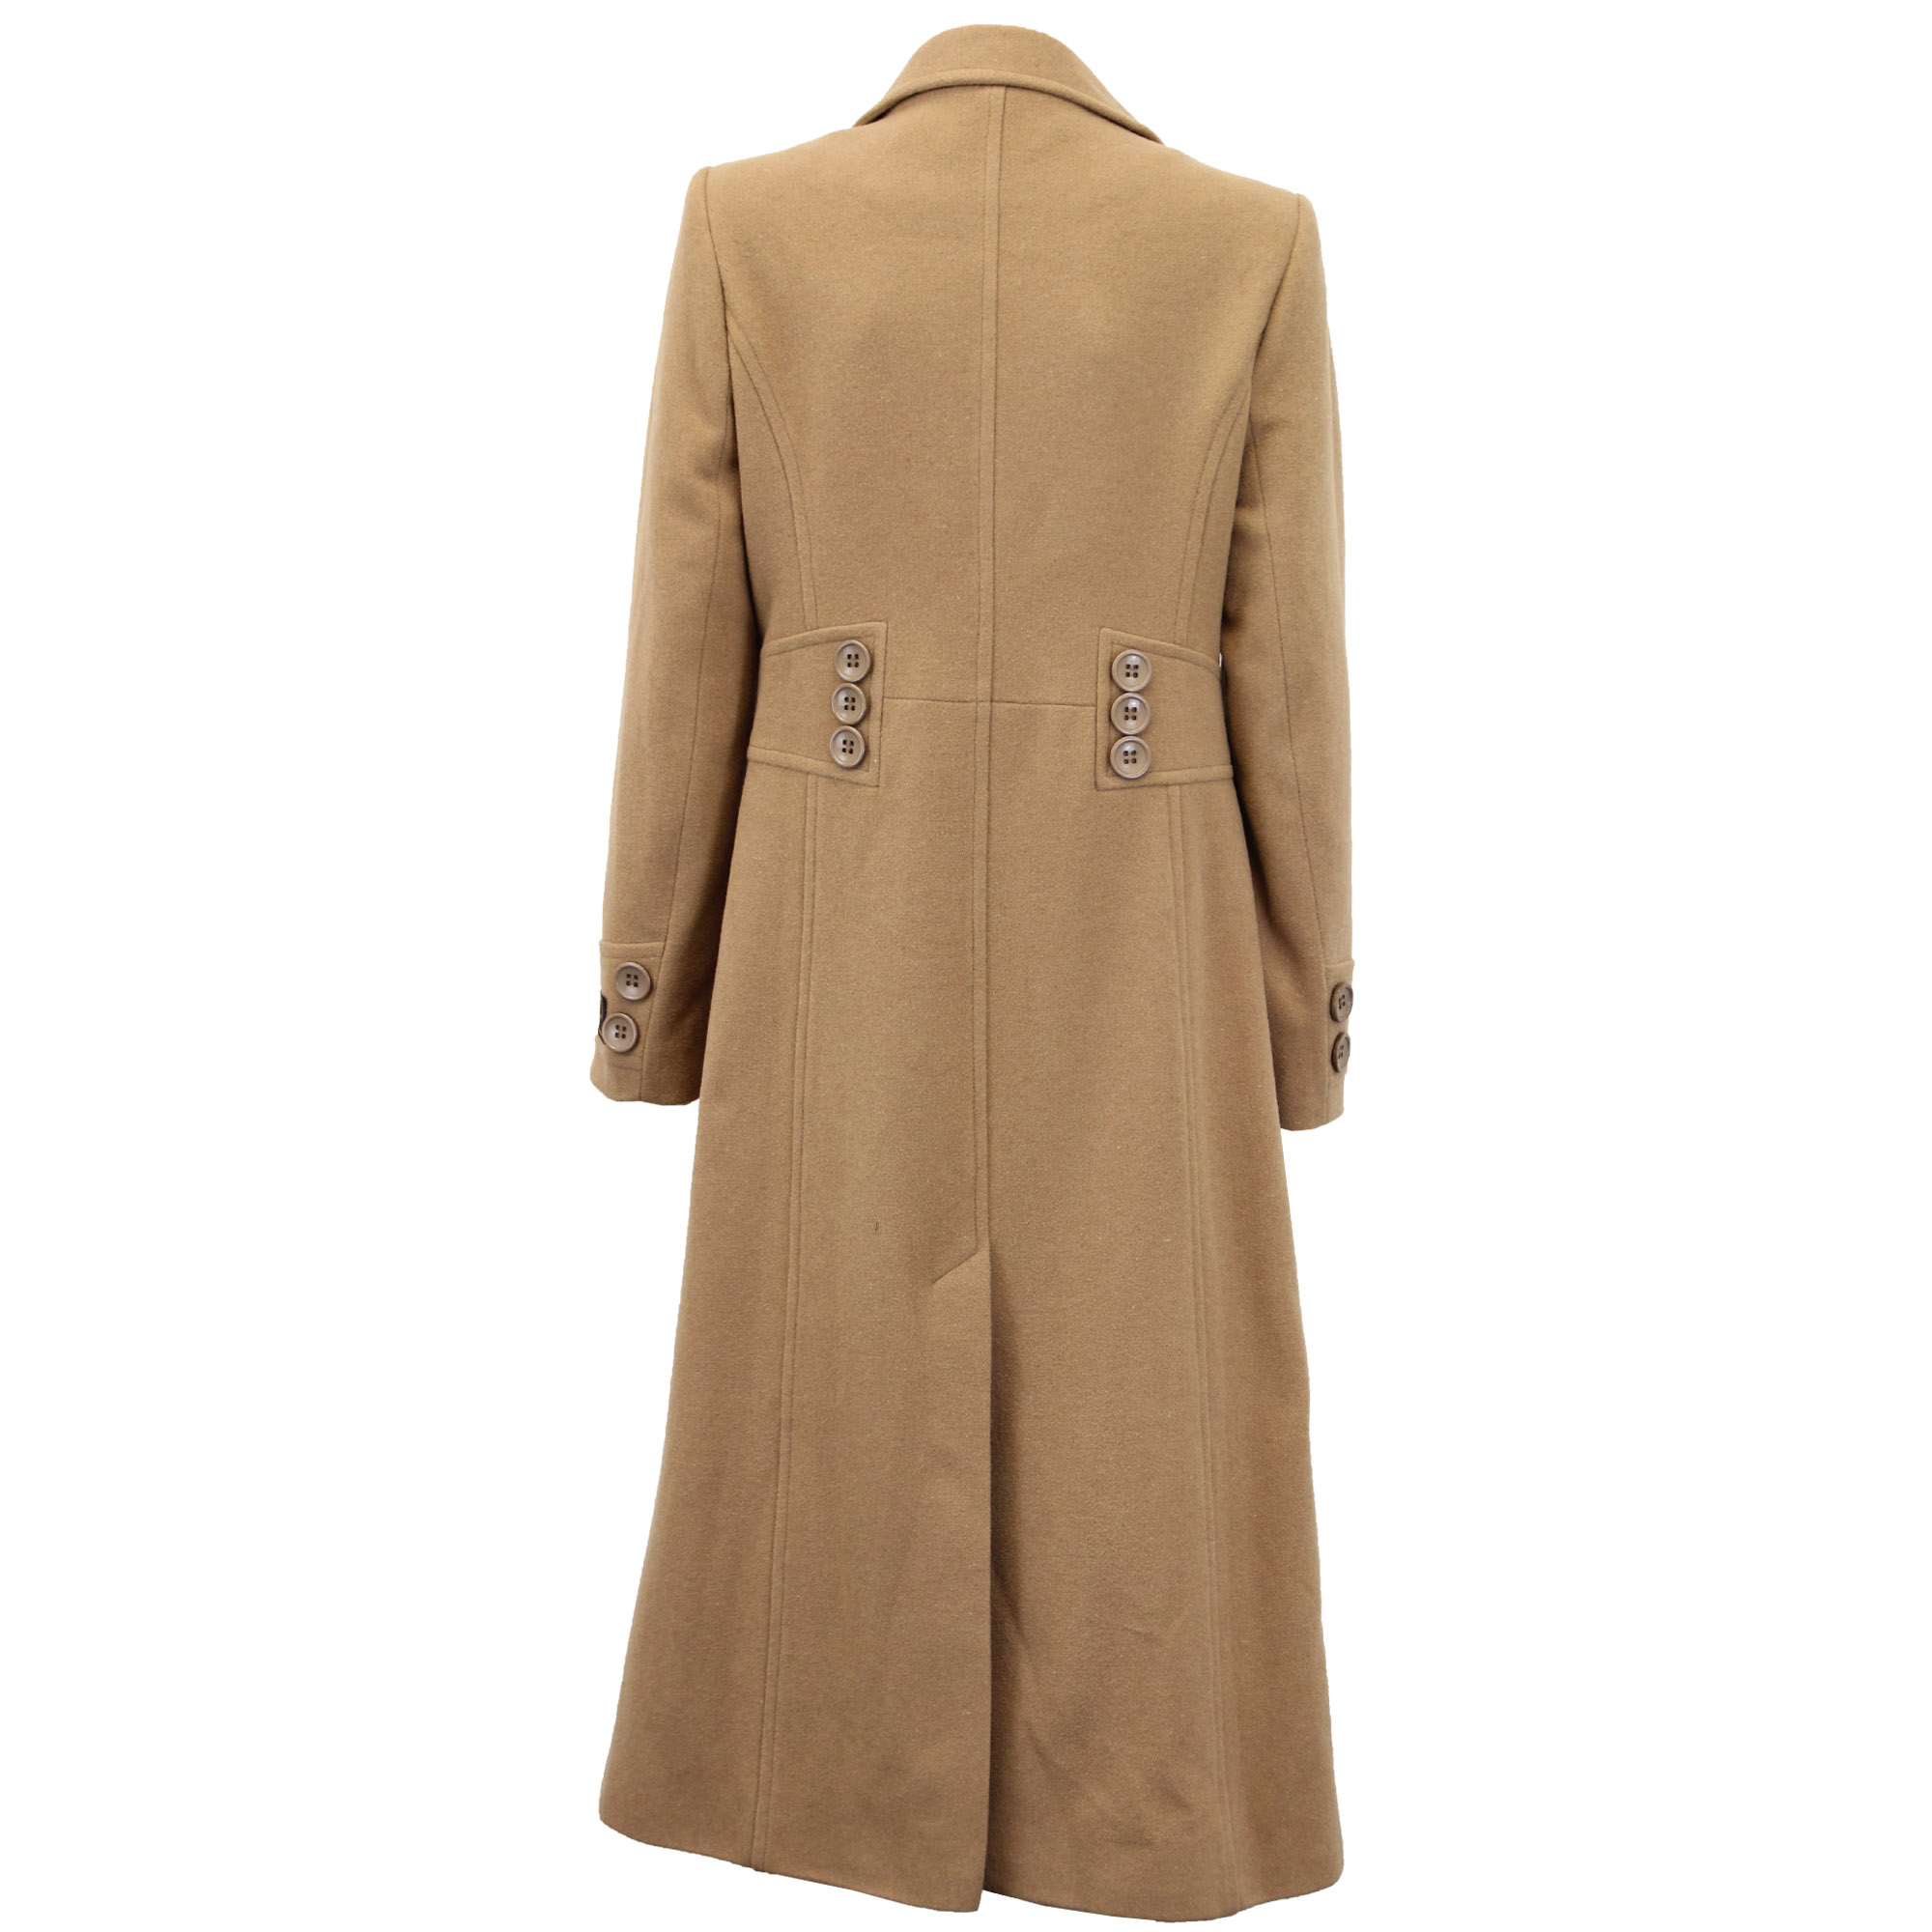 Ladies-Wool-Cashmere-Coat-Women-Jacket-Outerwear-Trench-Overcoat-Winter-Lined thumbnail 26